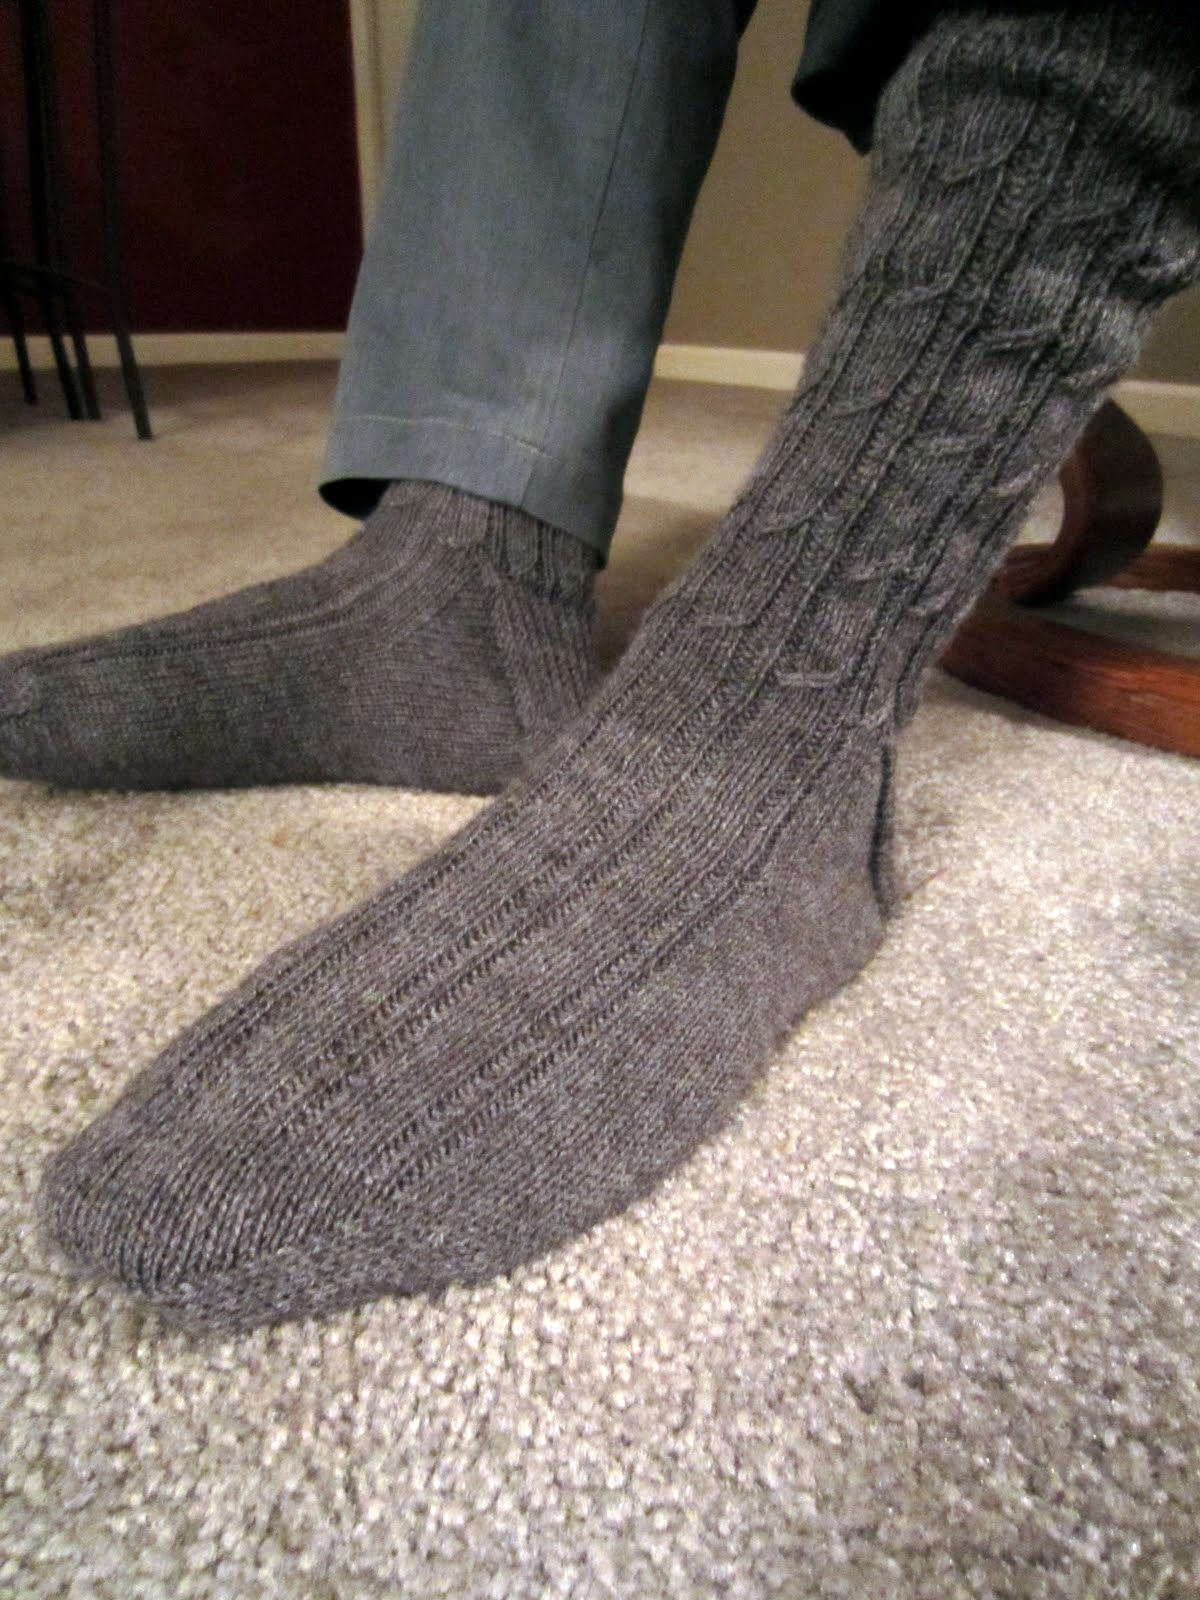 Knitting mock cable socks for men 11 inches of foot length translates into many many hours of knitting and luckily i enjoyed this pattern big socks arent easy to do and this pattern was bankloansurffo Image collections